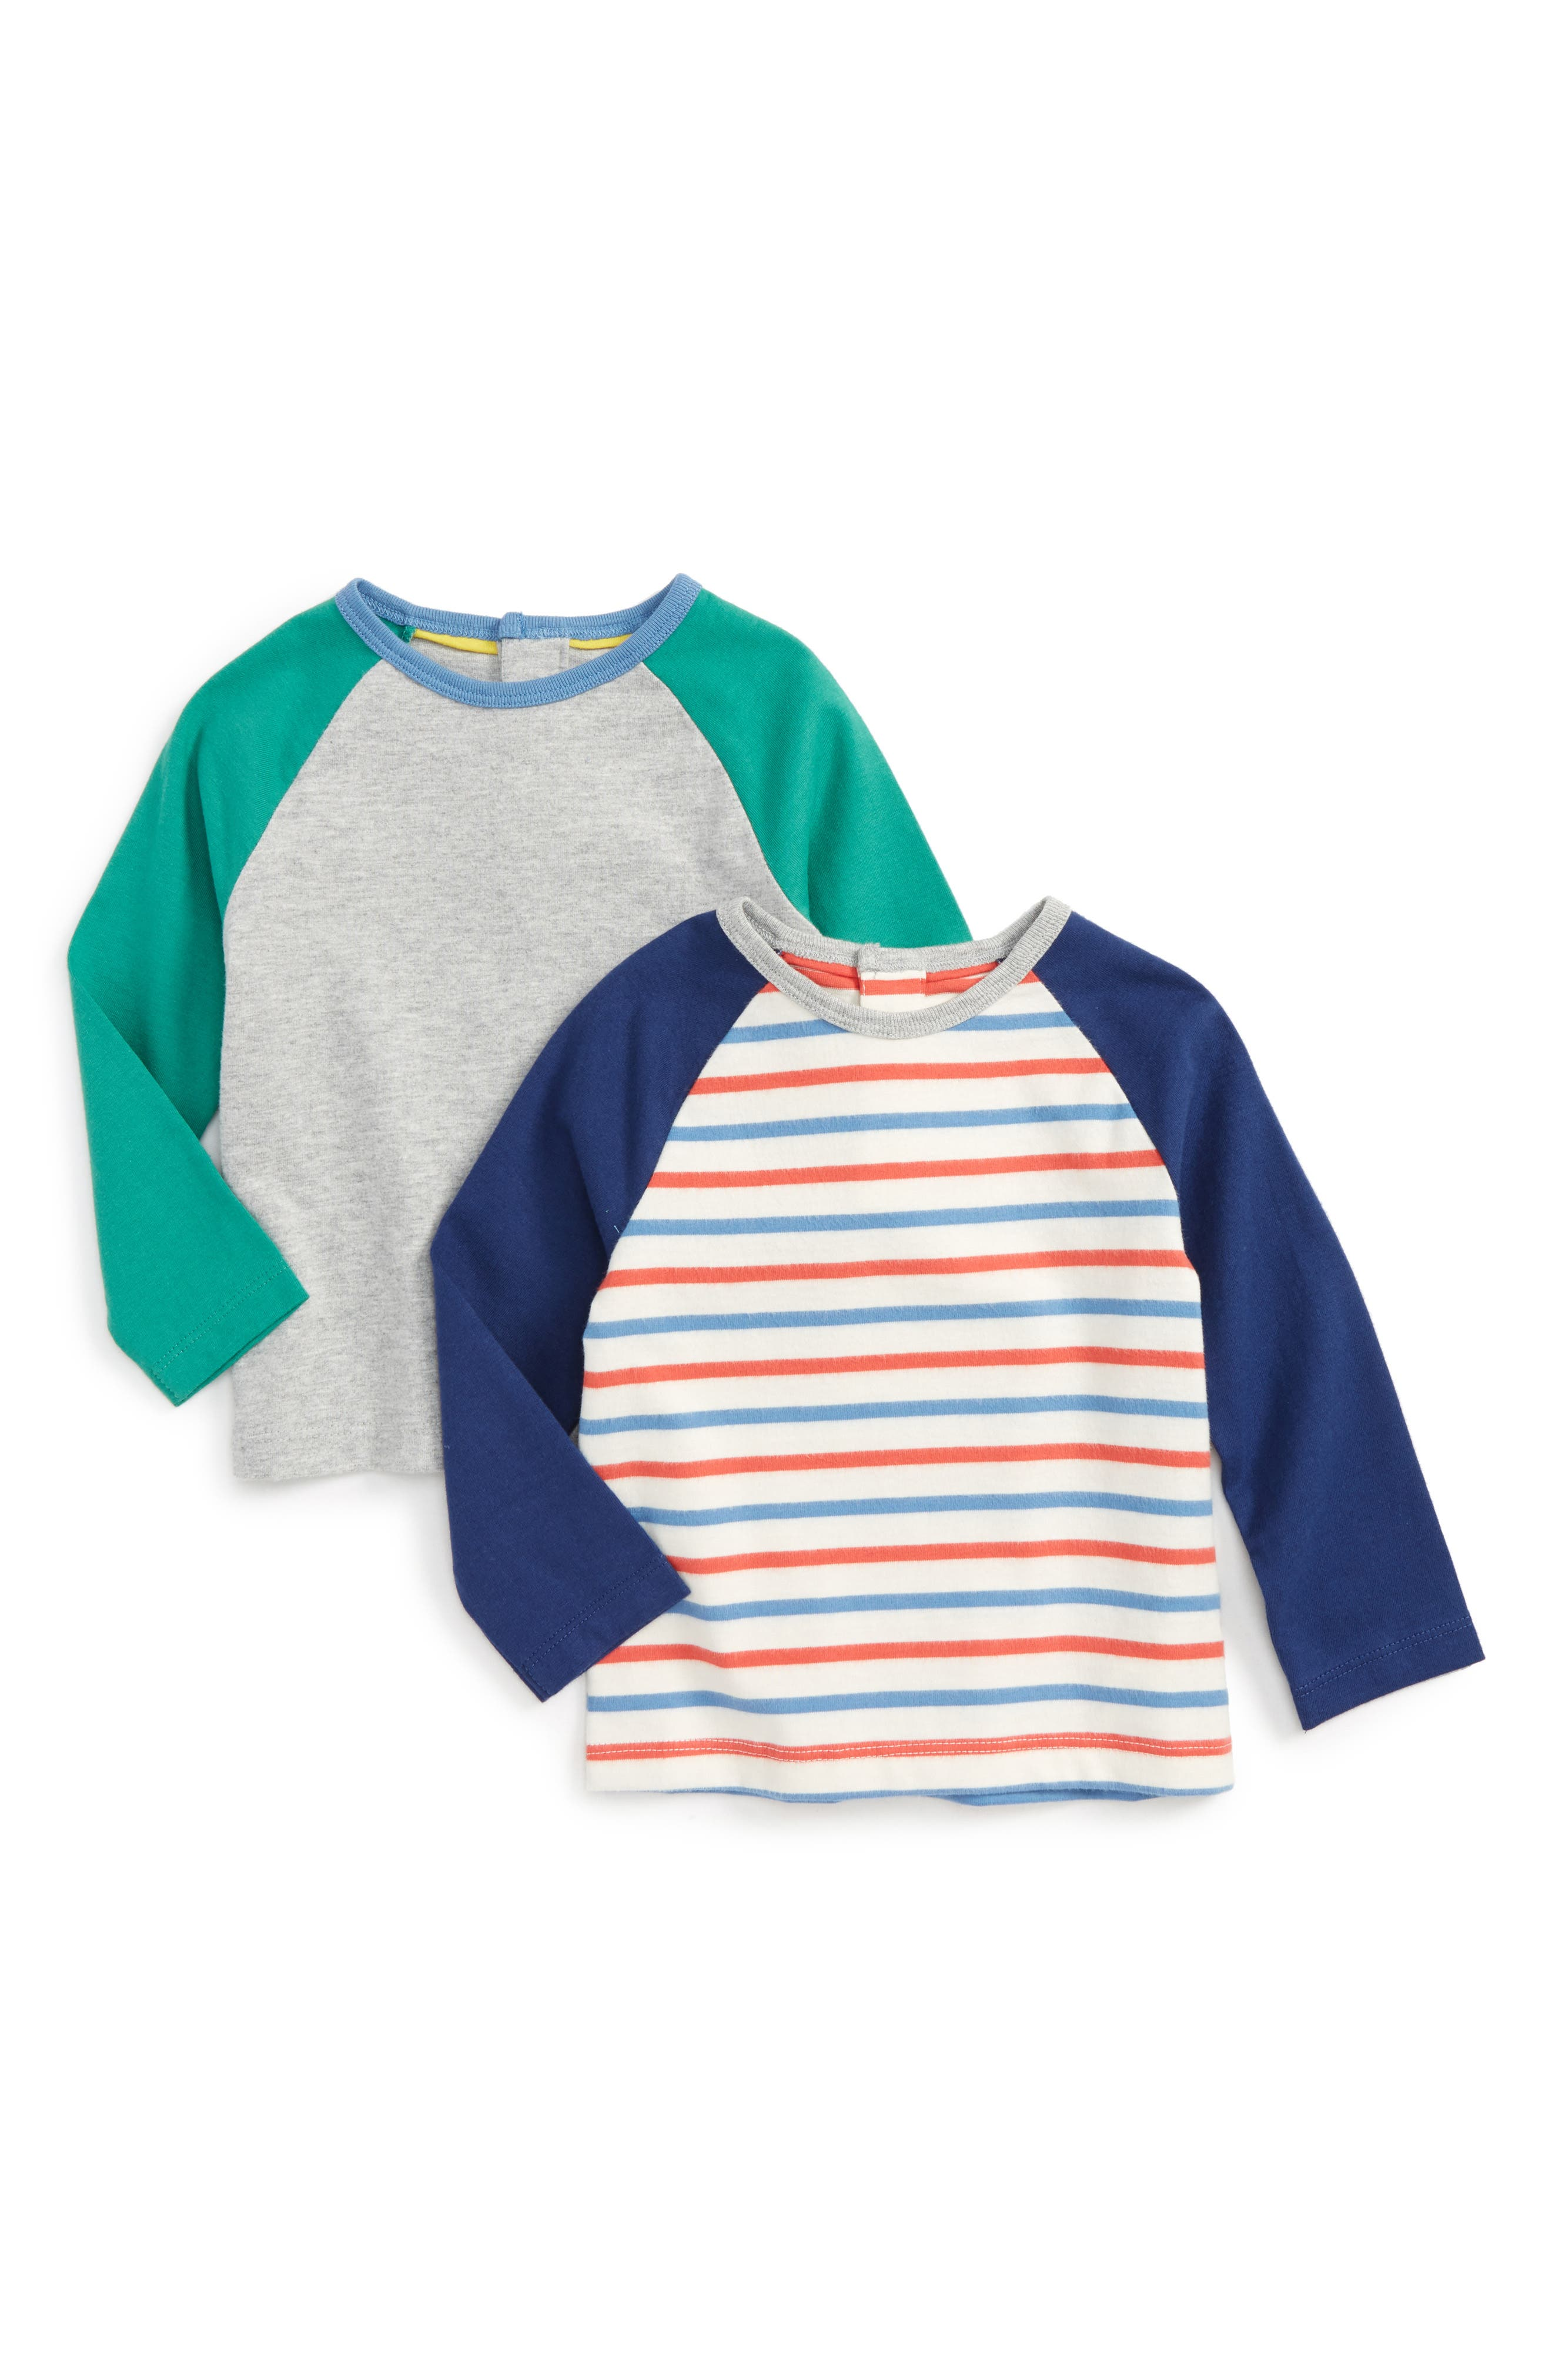 Alternate Image 1 Selected - Mini Boden 2-Pack T-Shirts (Baby Boys & Toddler Boys)